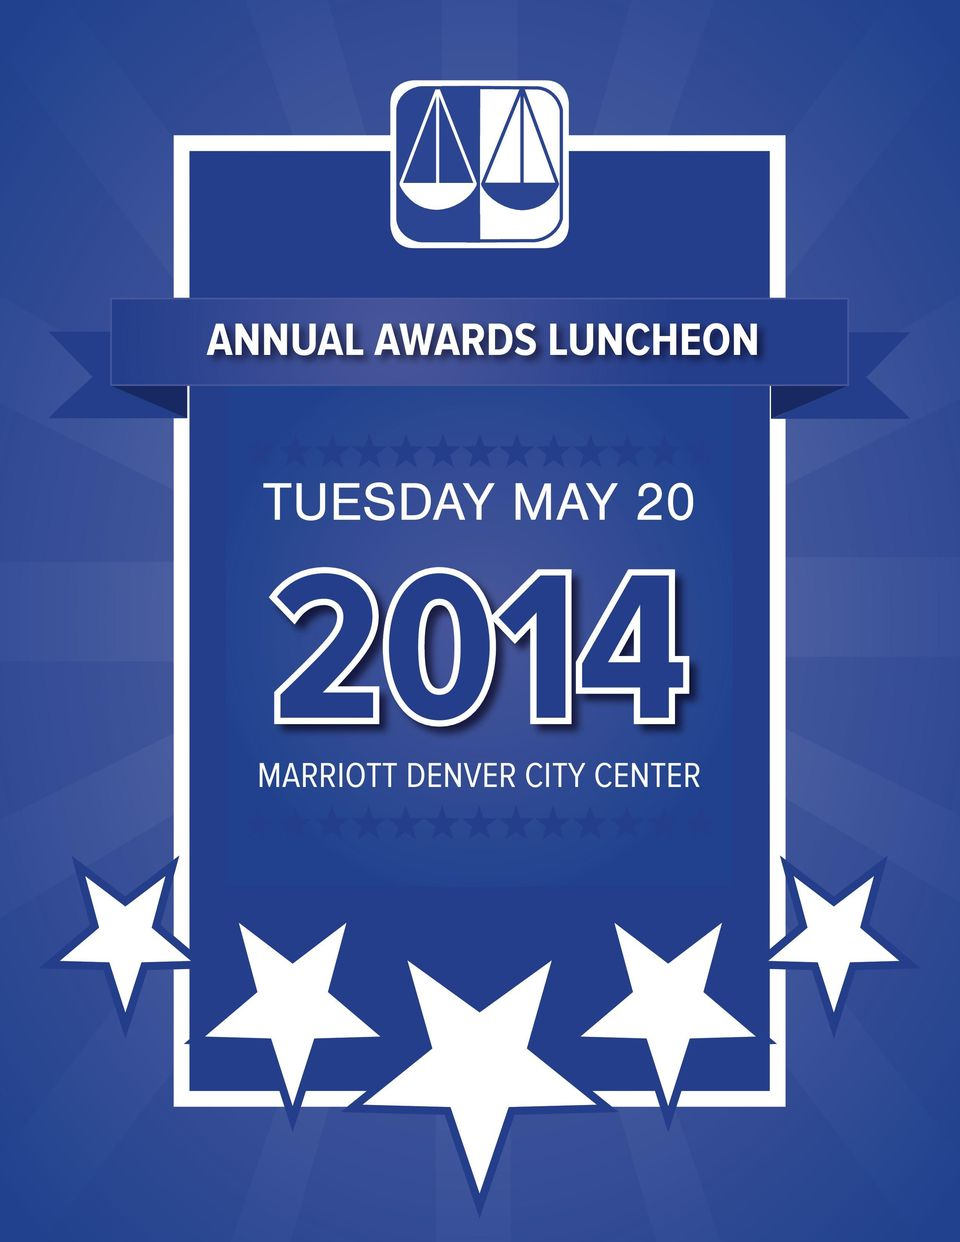 LUNCHEON TUESDAY MAY 20